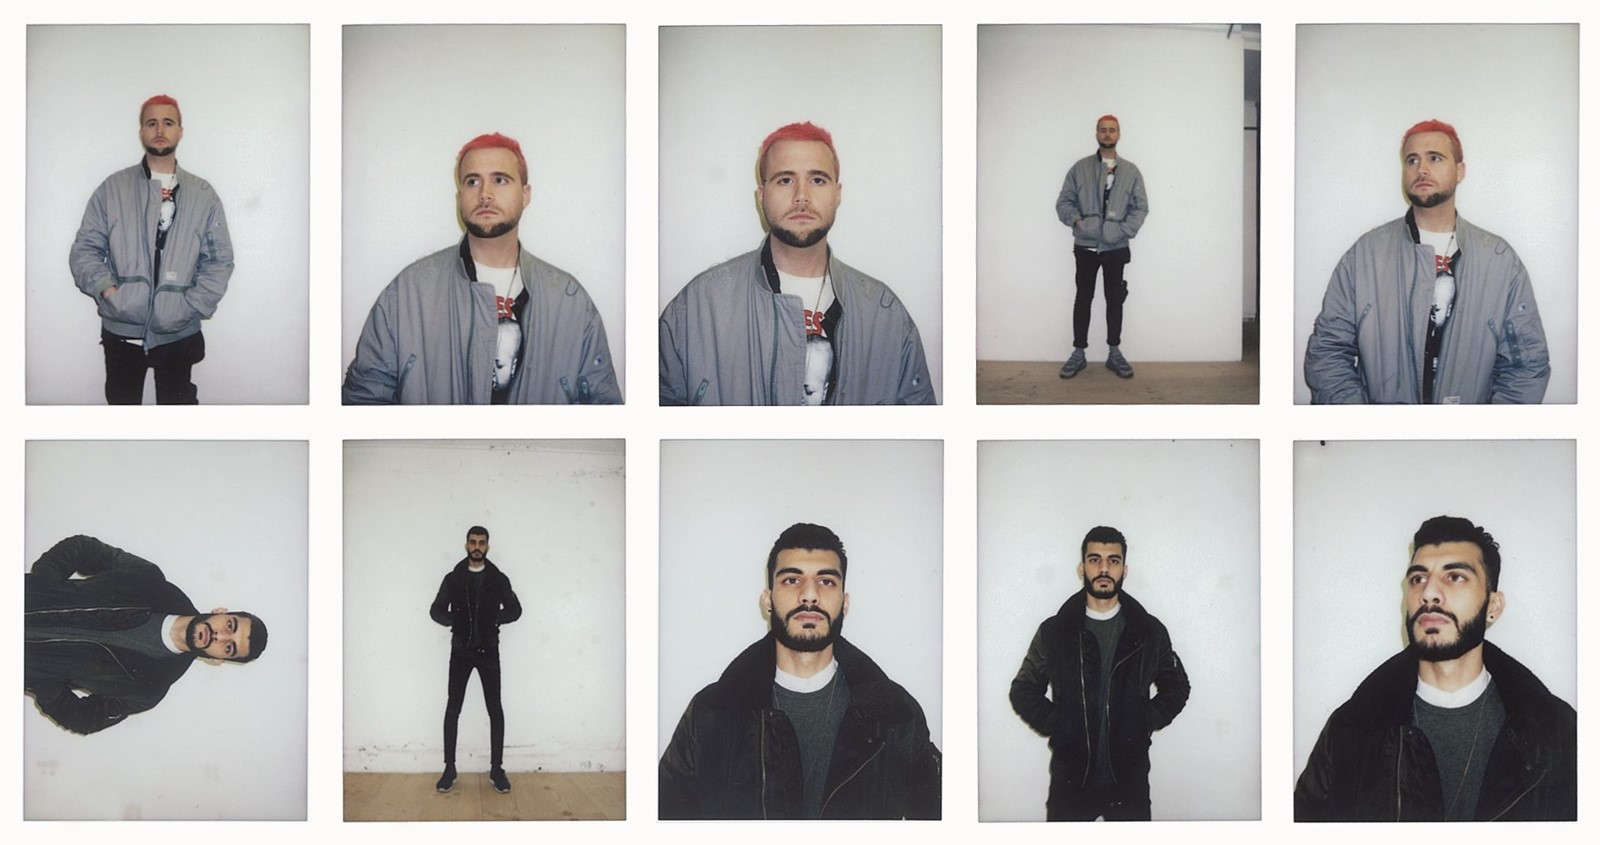 Christopher Wylie and Shahmir Sanni